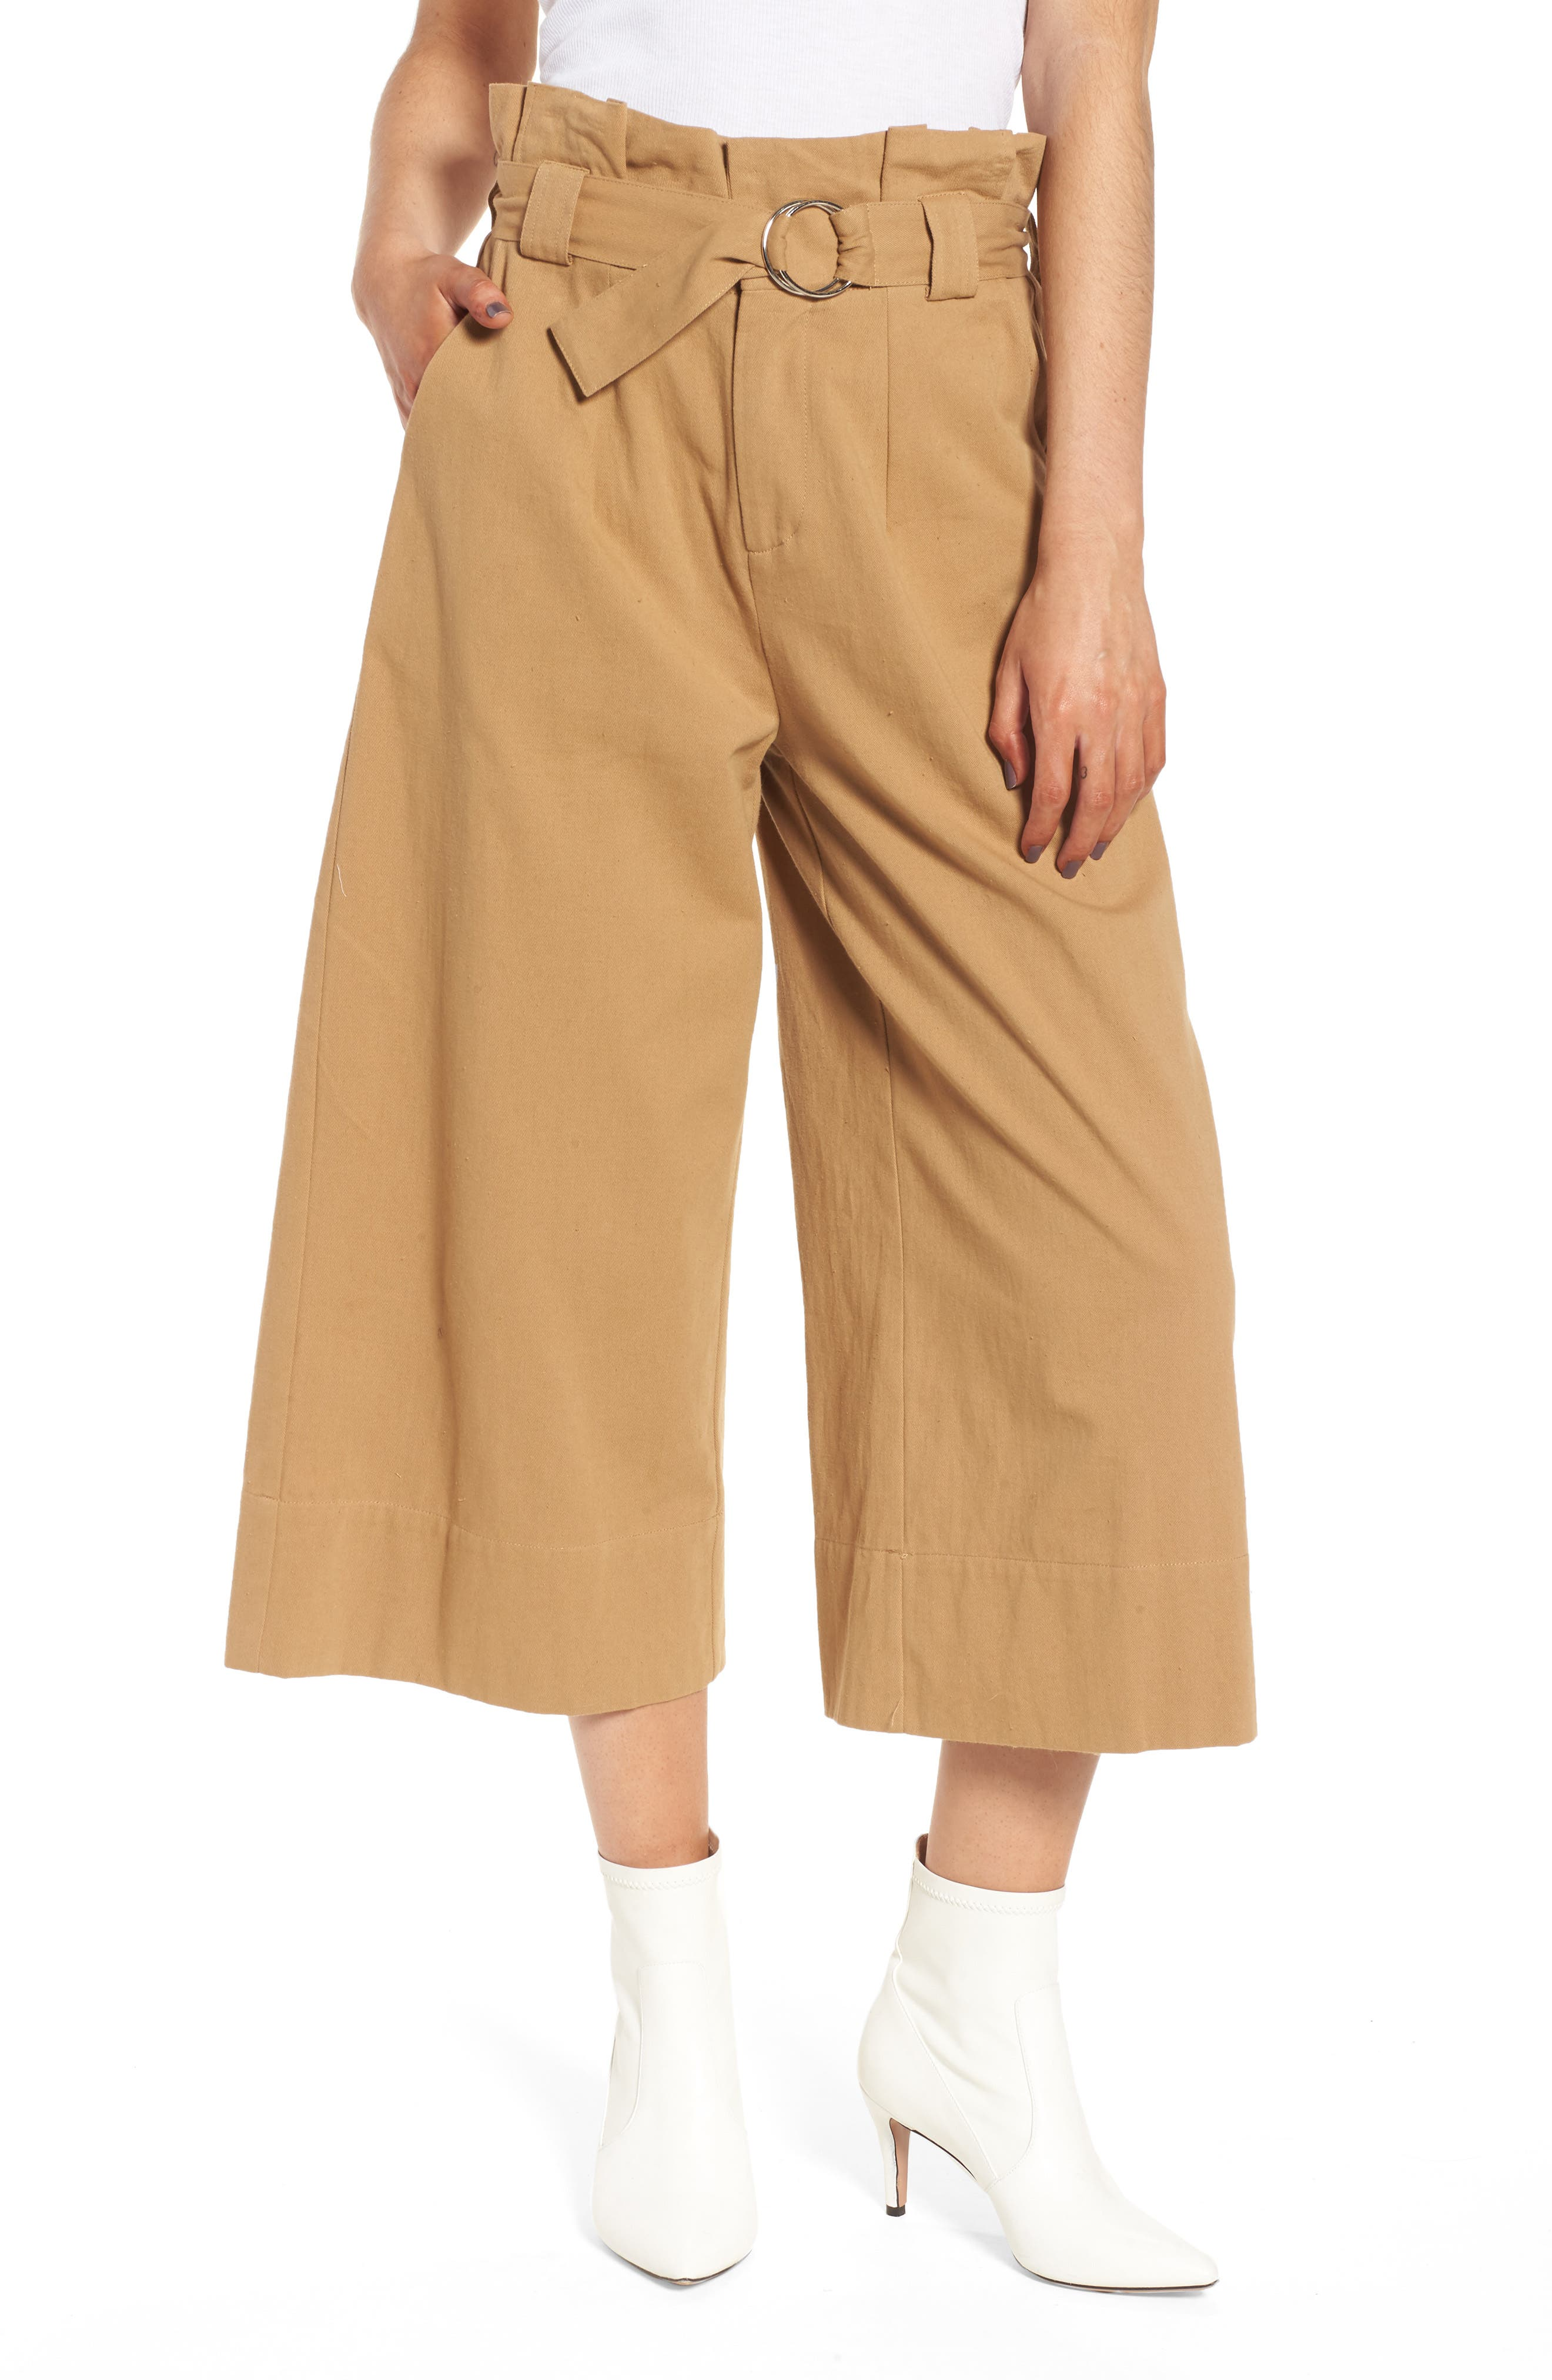 Alternate Image 1 Selected - Paperbag Waist Crop Pants